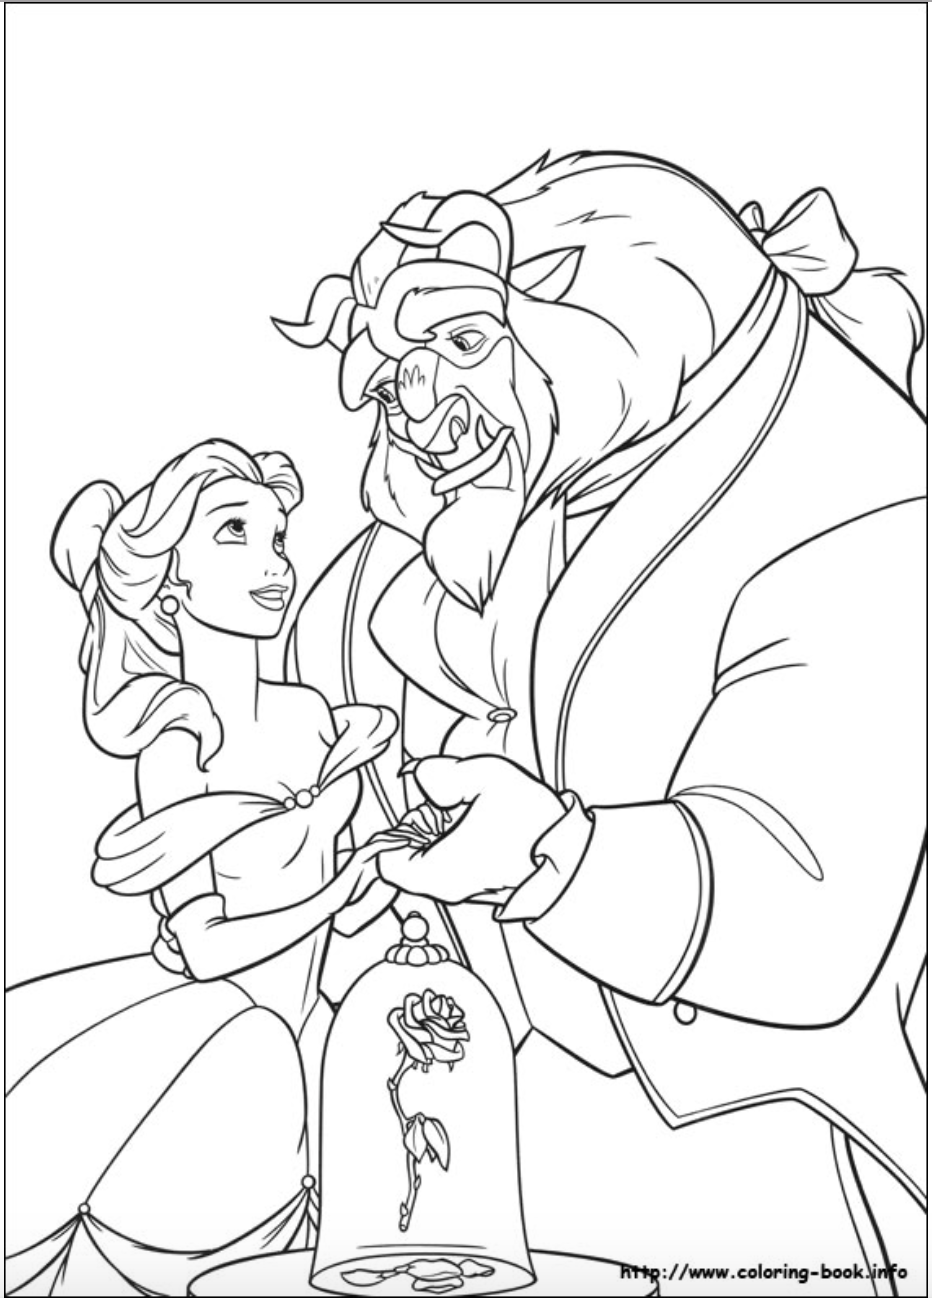 Beauty And The Beast Belle And The Beast Coloring Page Disney Coloring Pages Disney Princess Coloring Pages Princess Coloring Pages